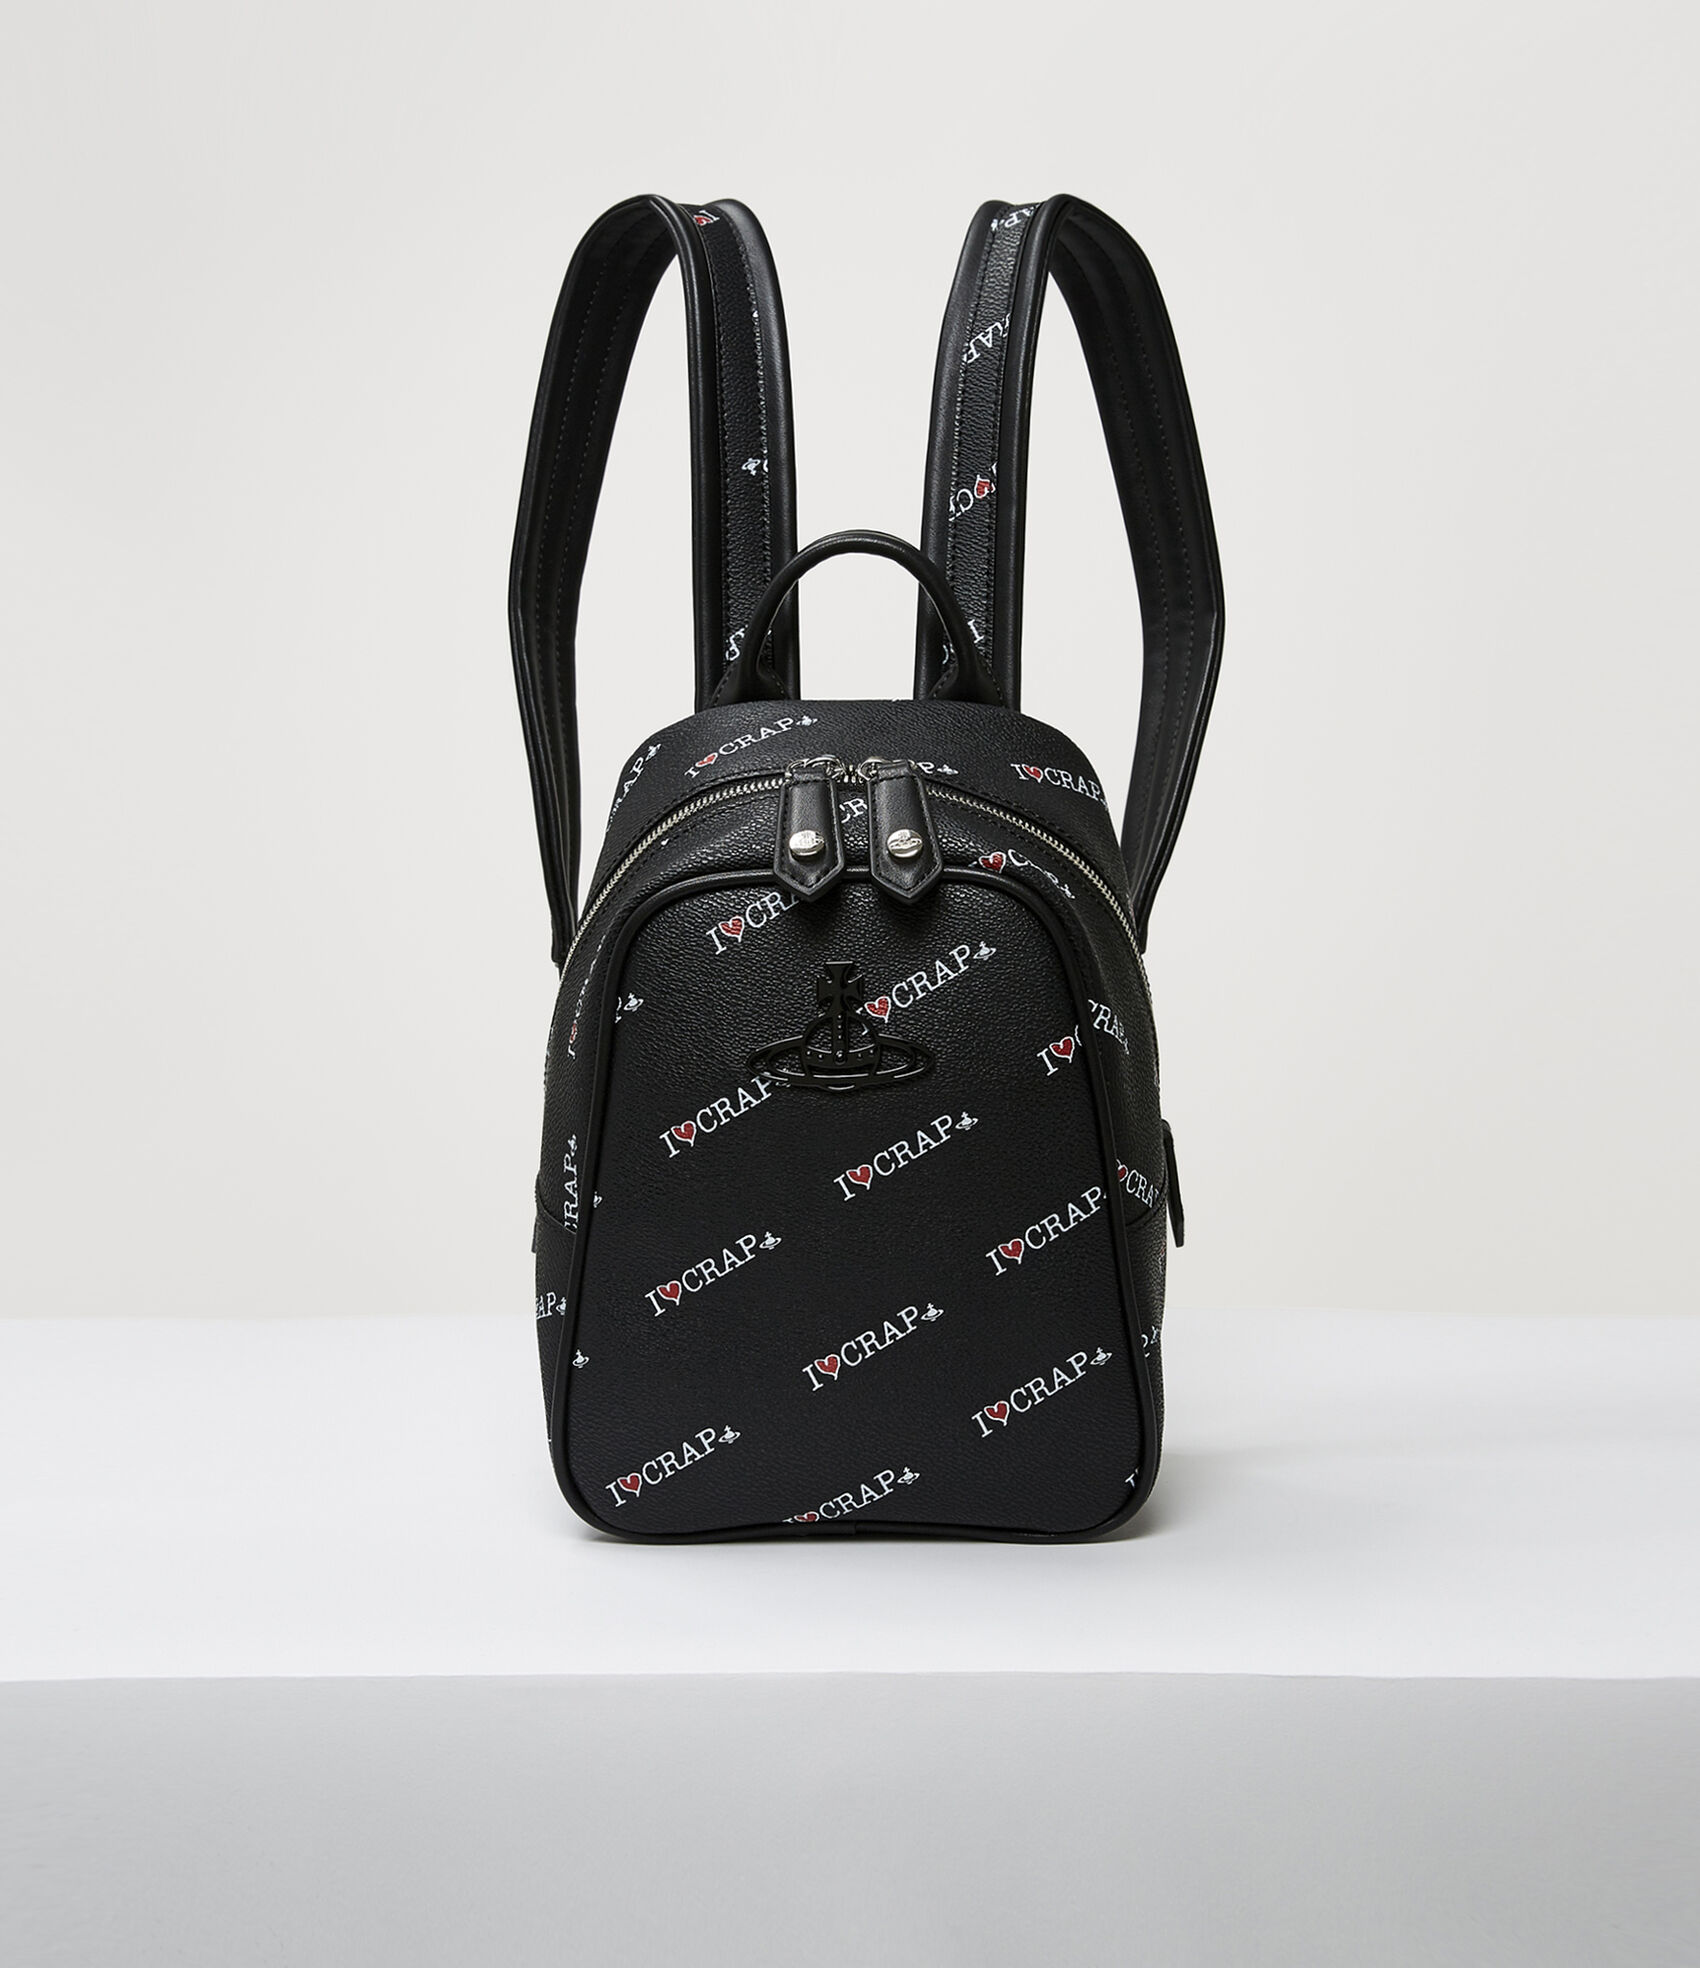 Vivienne Westwood Backpacks | Women's Bags | Vivienne Westwood - Annie Mini  Backpack Black